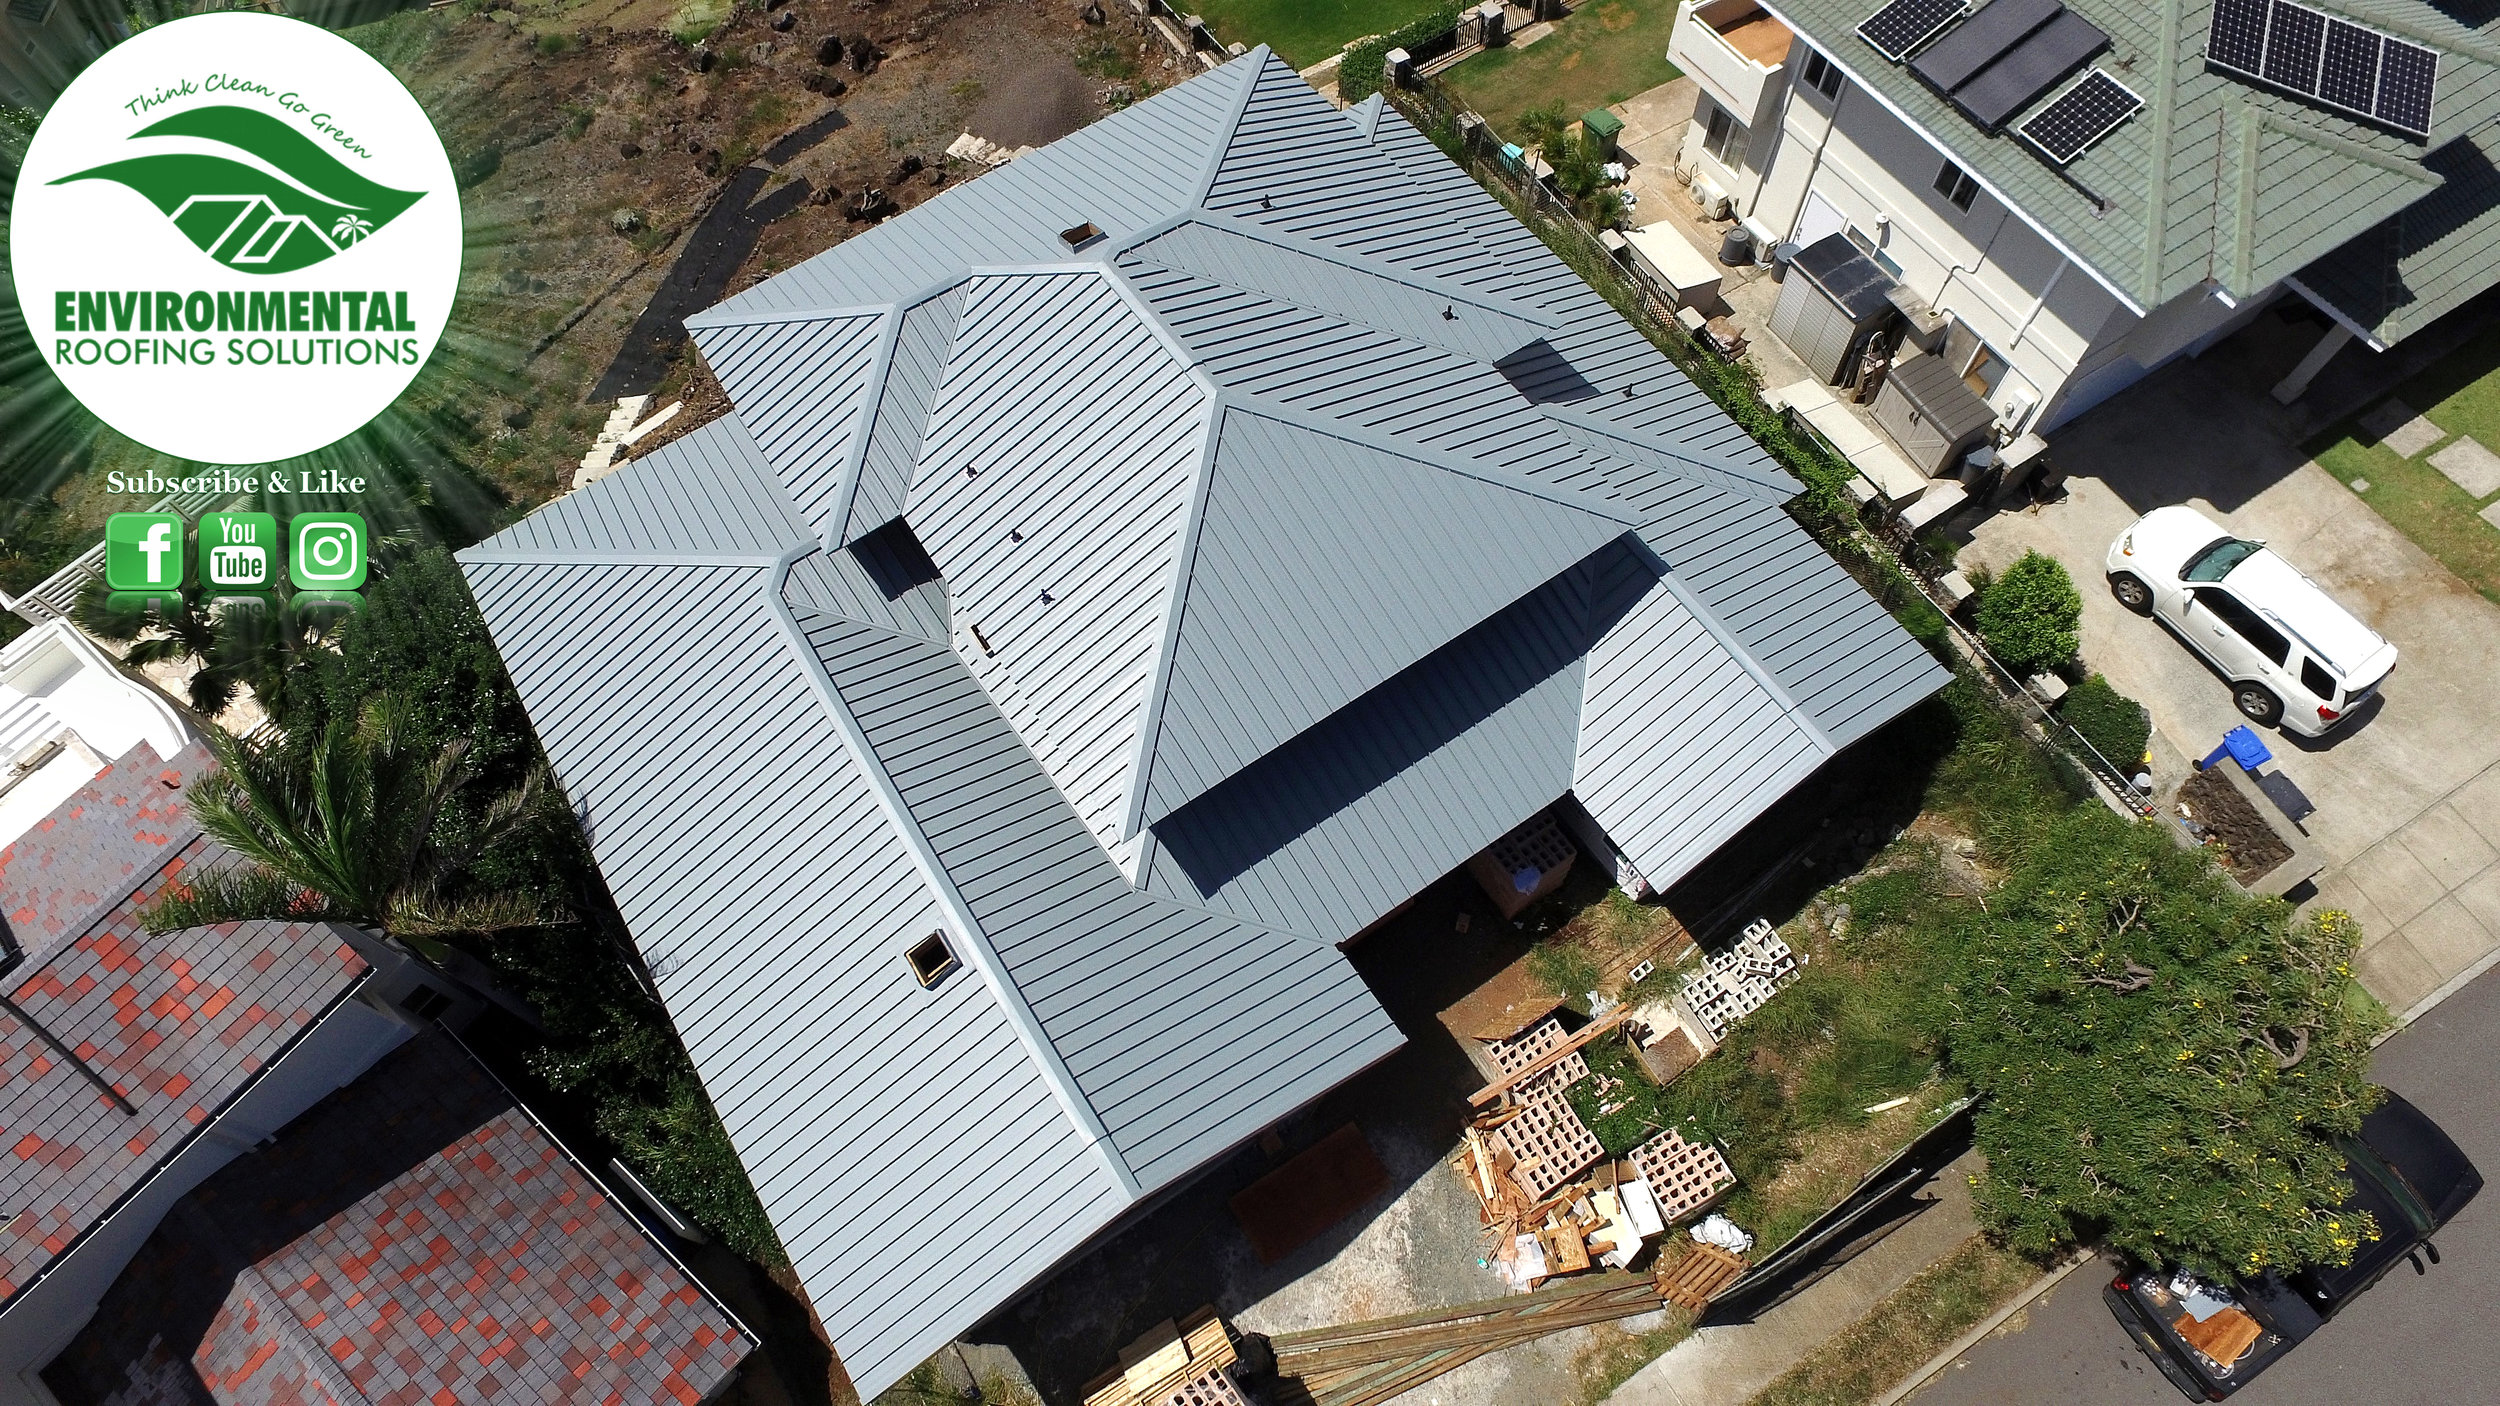 Environmental Roofing Solutions Honolulu Hawaii Roofing Company Slope To High Slope Roofs